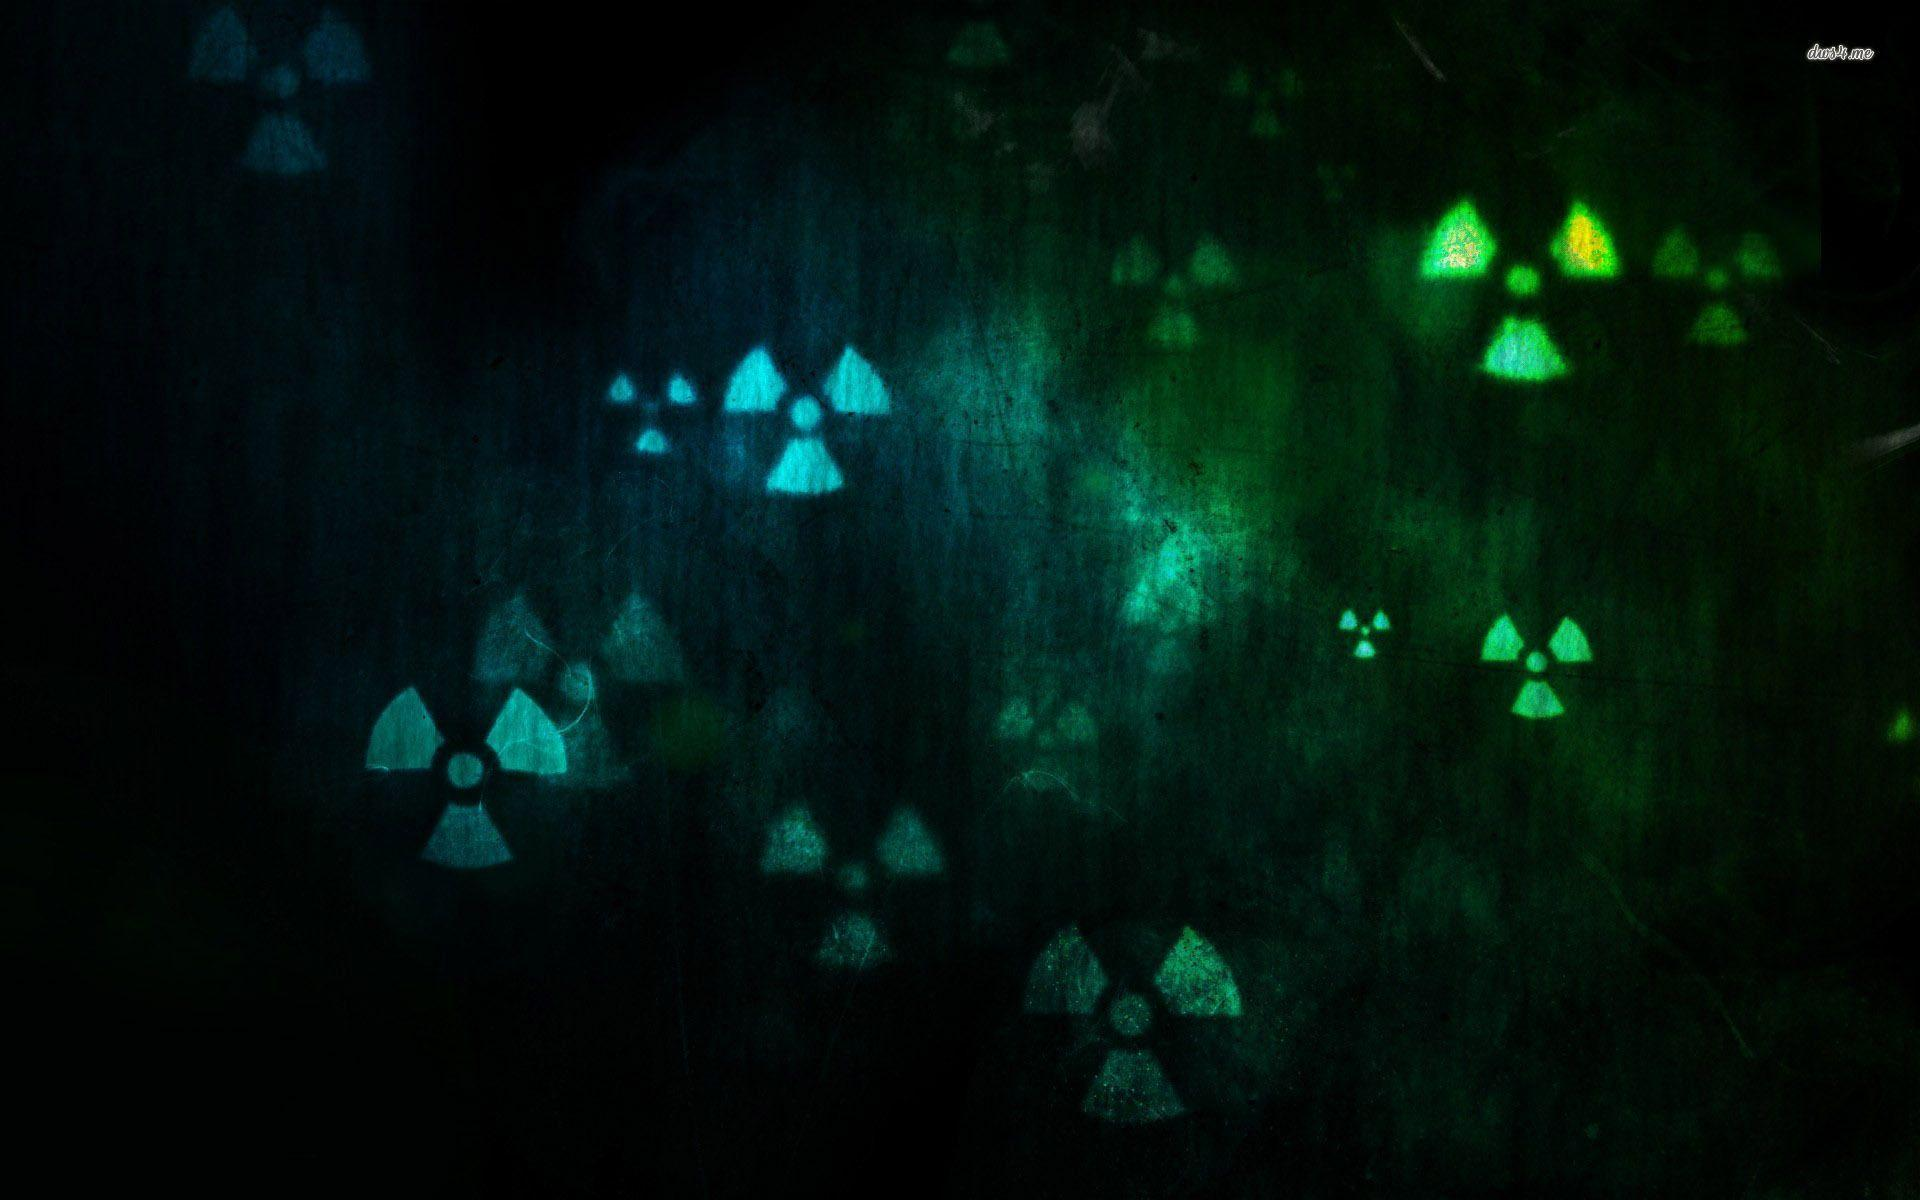 Radioactive Wallpapers 27 PC Backgrounds In Beautiful